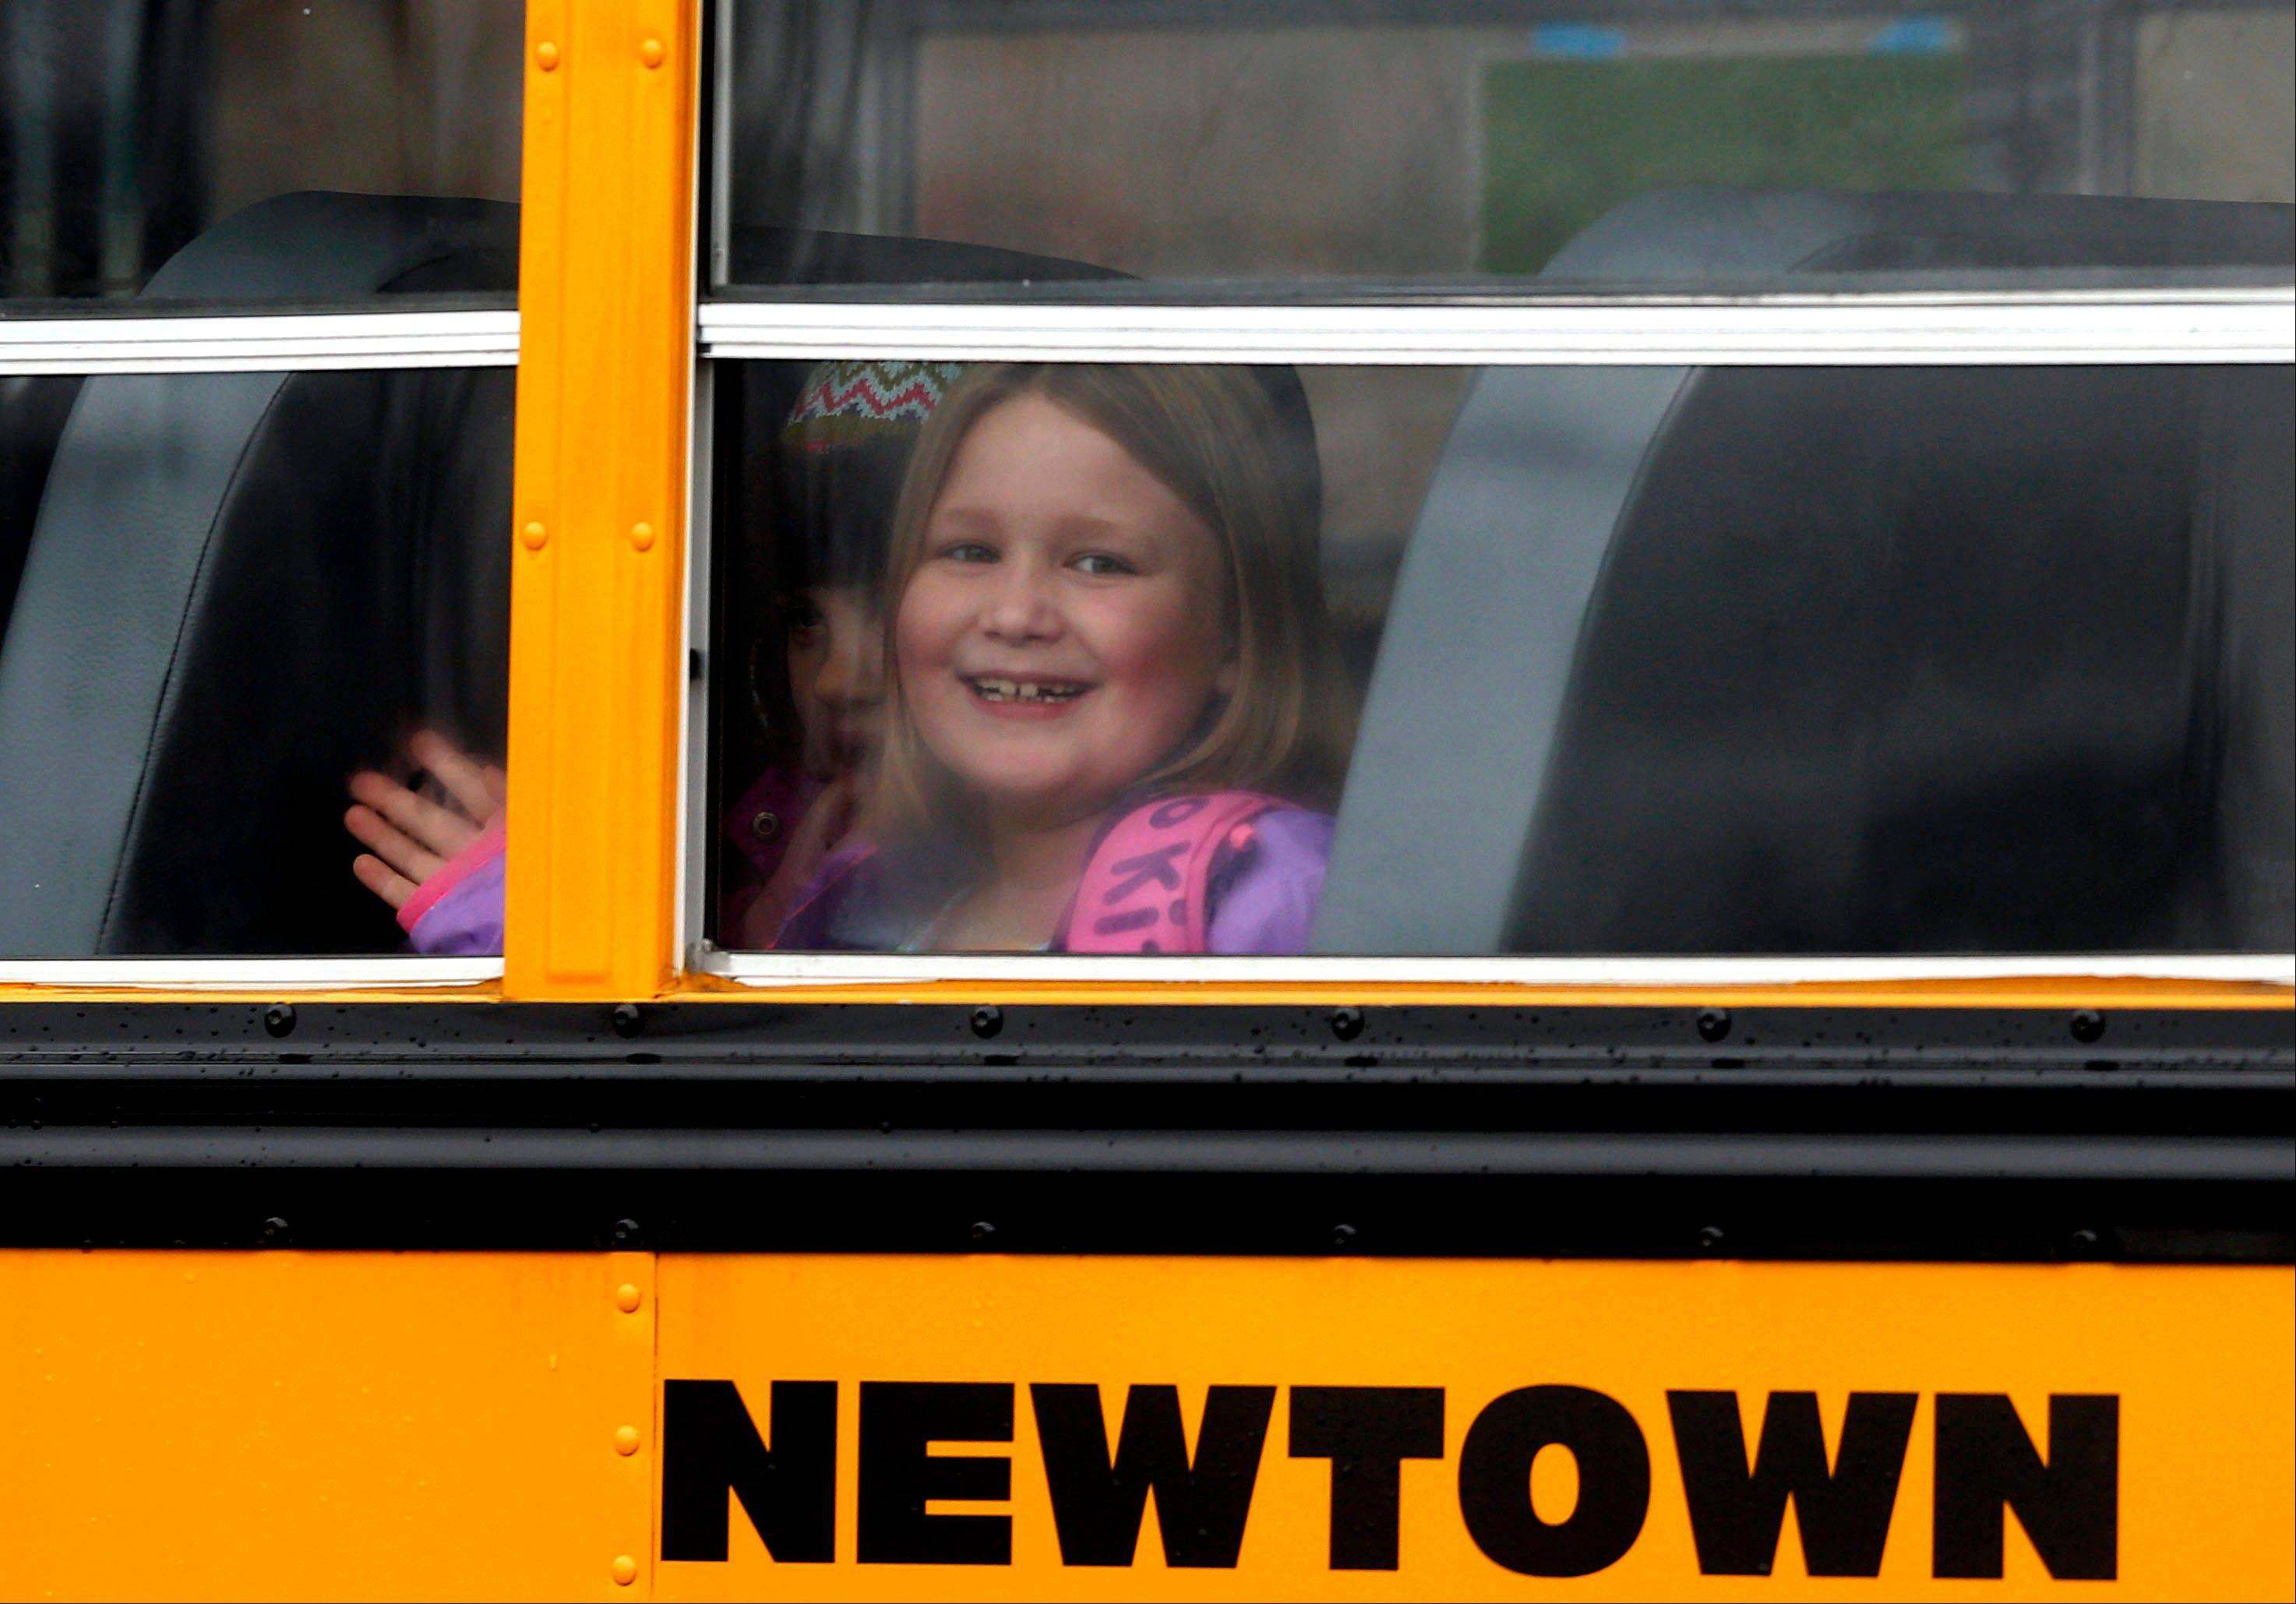 Classes resuming in Newtown, minus Sandy Hook